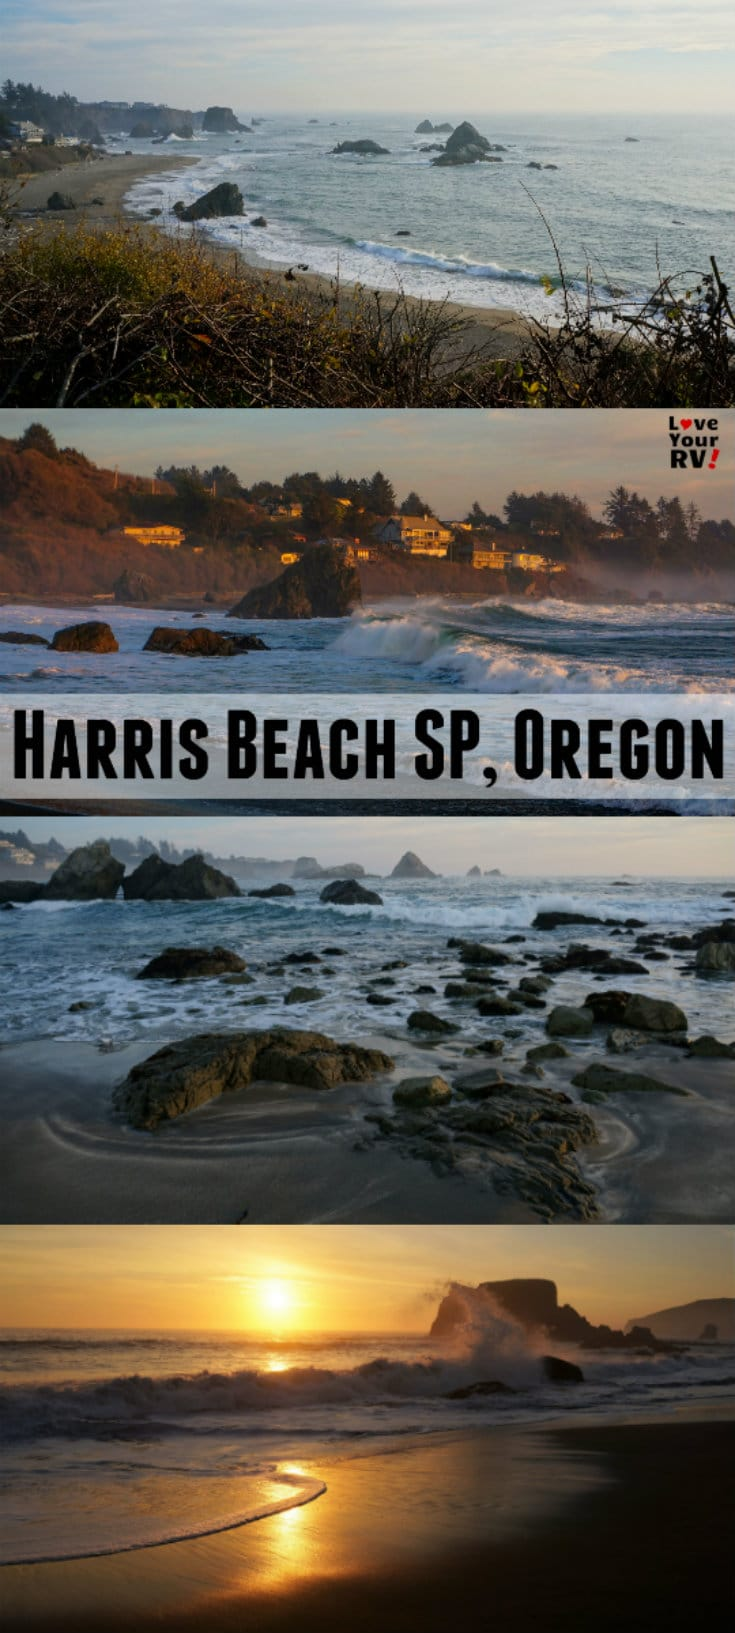 Camping and beach walks at Harris Beach State Park in Brookings Oregon by the Love Your RV blog - https://www.loveyourrv.com